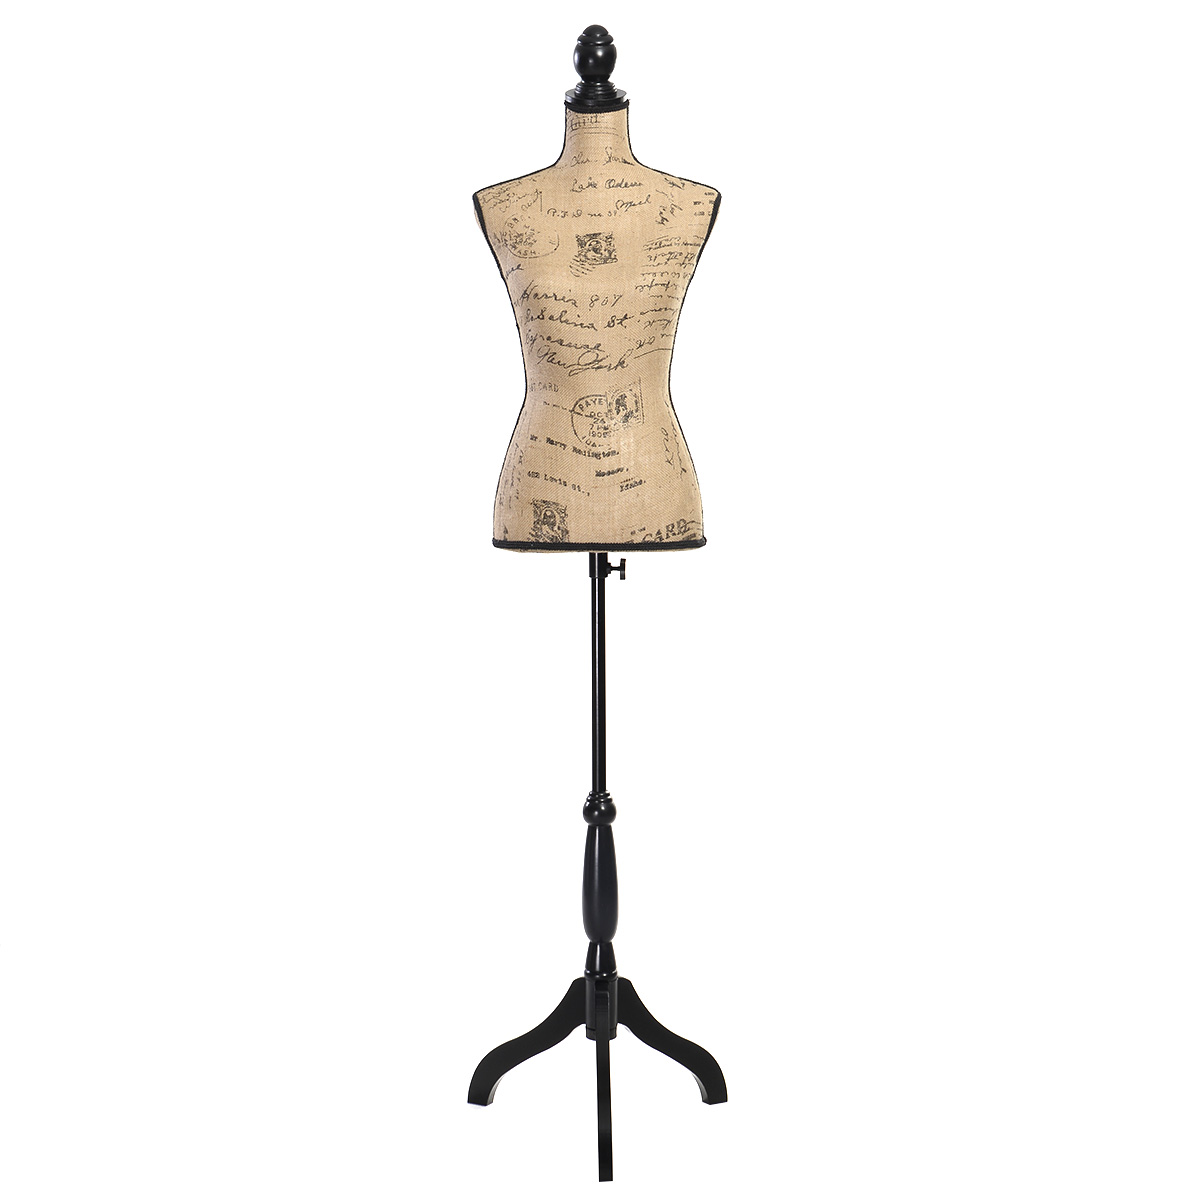 Female mannequin torso dress form display w tripod stand new for Lady mannequin jewelry holder